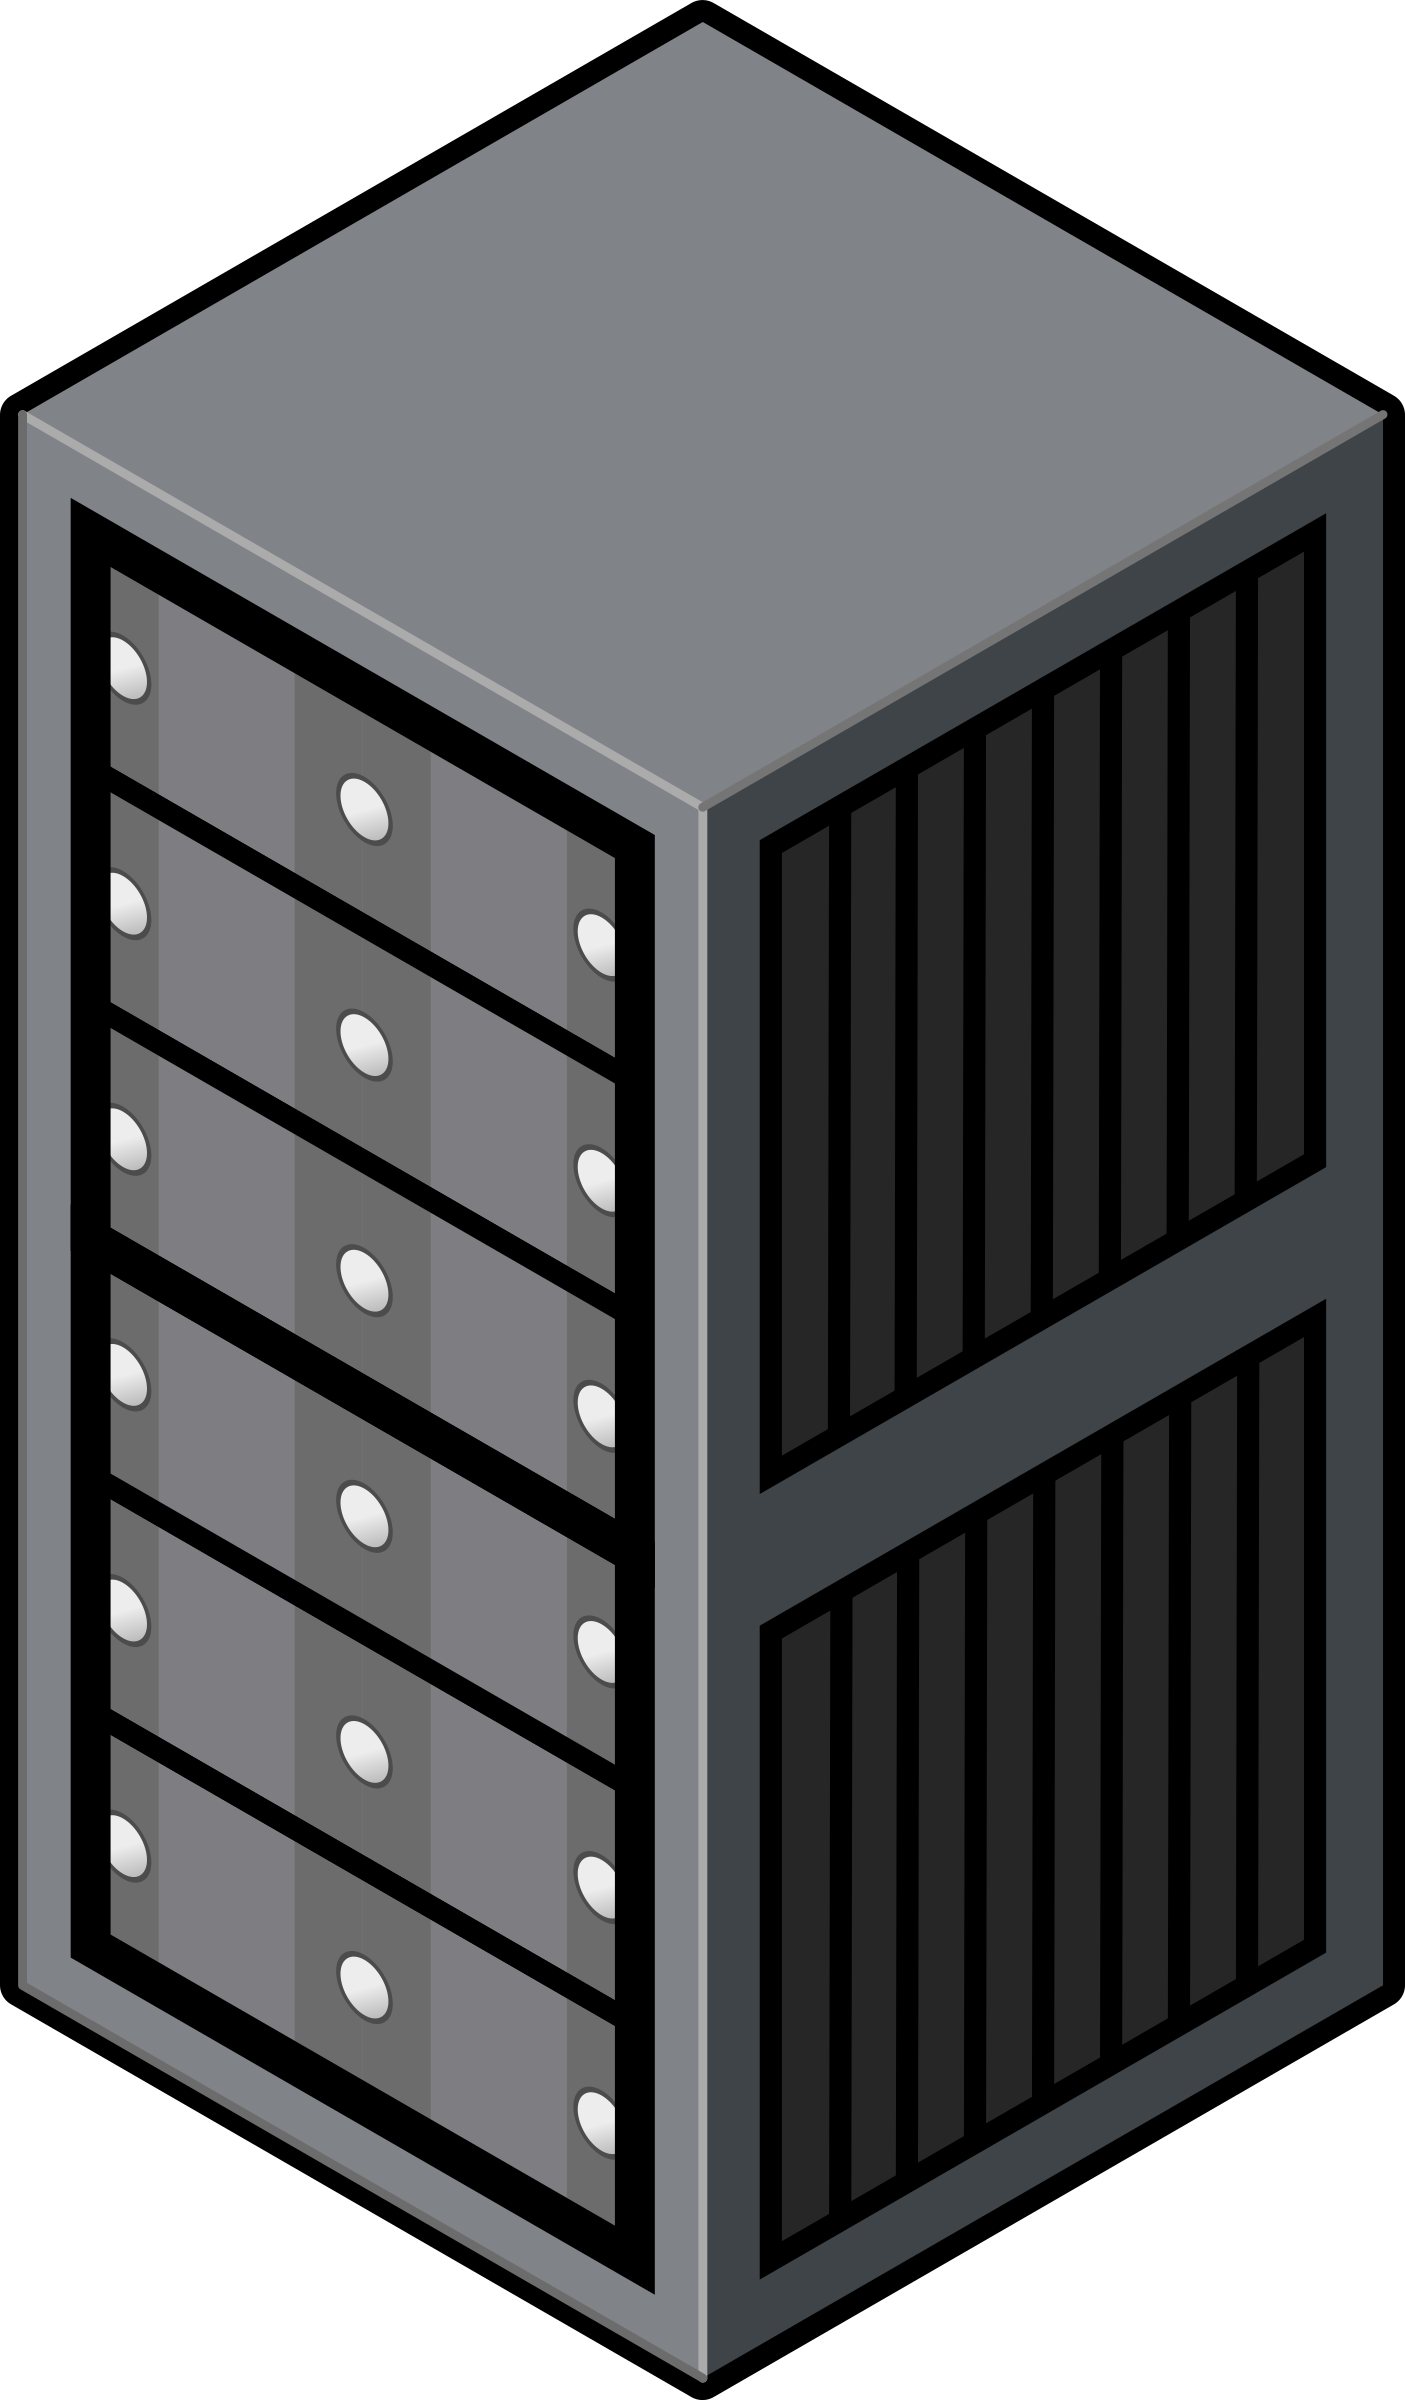 jpg freeuse library Isometric cabinet big image. Server clipart black and white